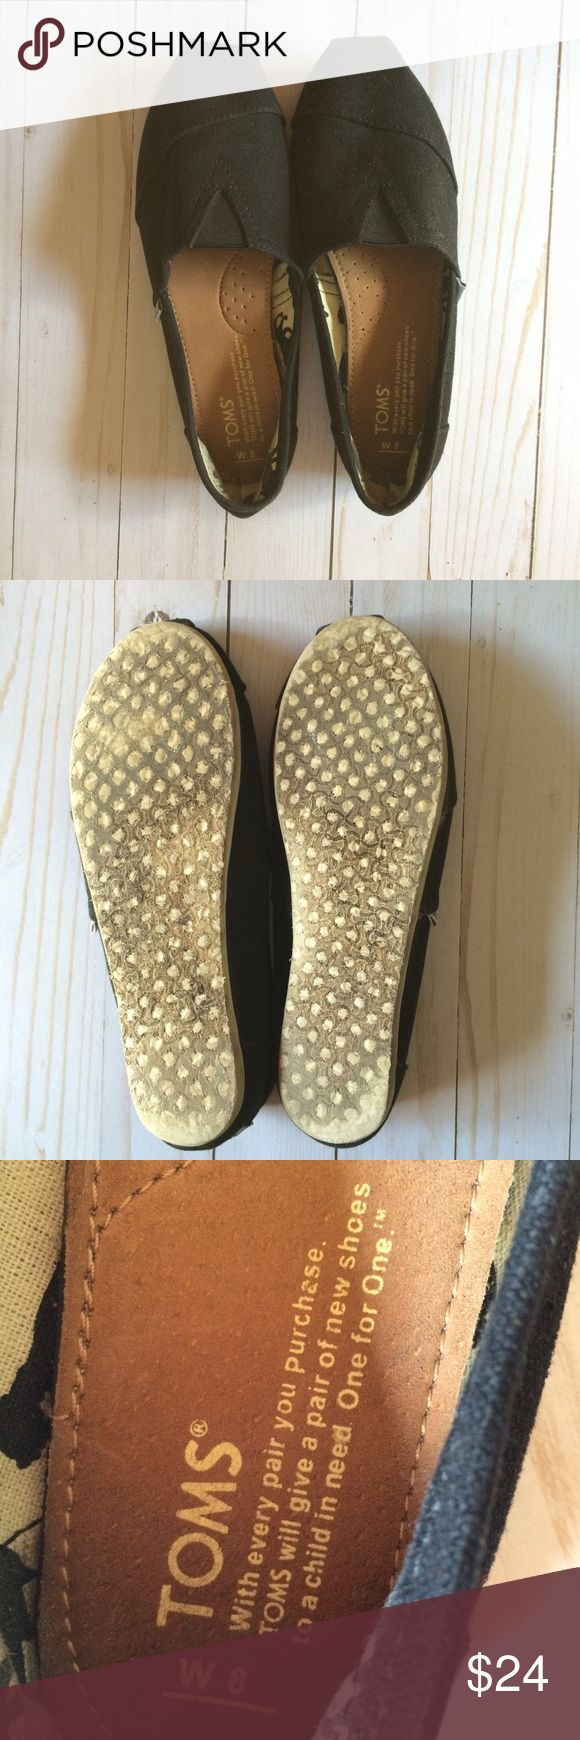 TOMS Classic Black Slip On Canvas Espadrilles 8W Previously used and show signs of wear. A bit dirty on the inside. Please see pictures TOMS Shoes Espadrilles